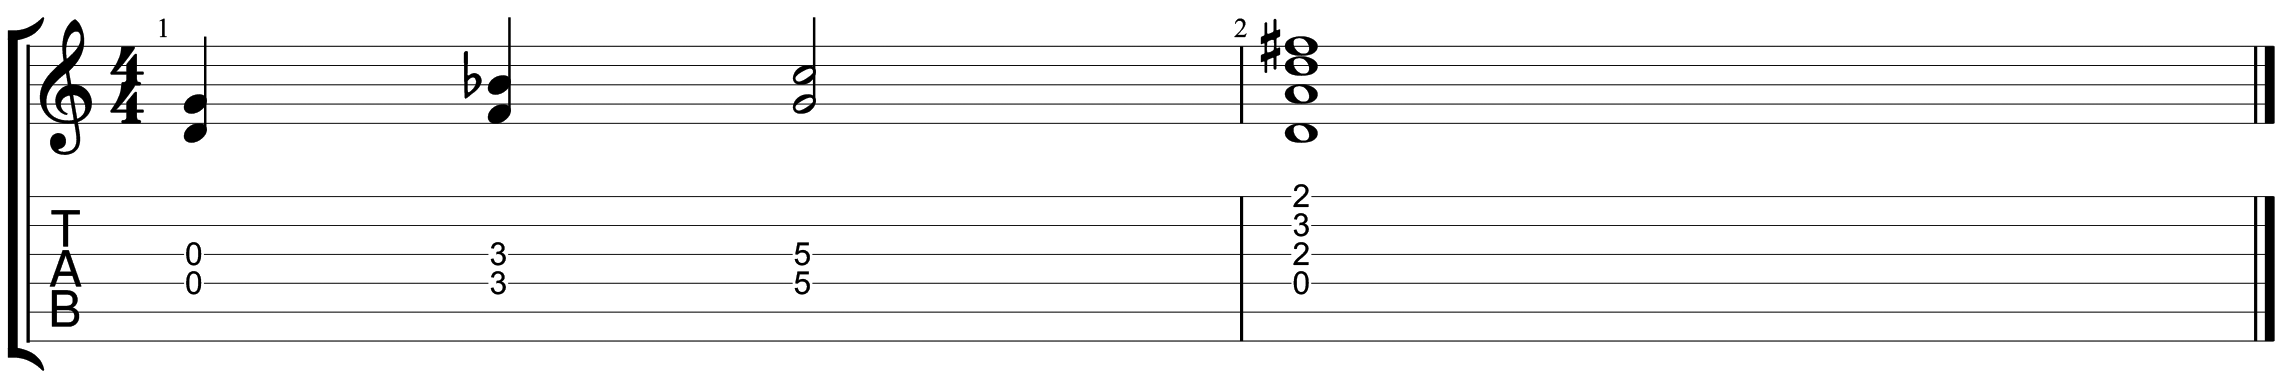 How to read guitar tab 4